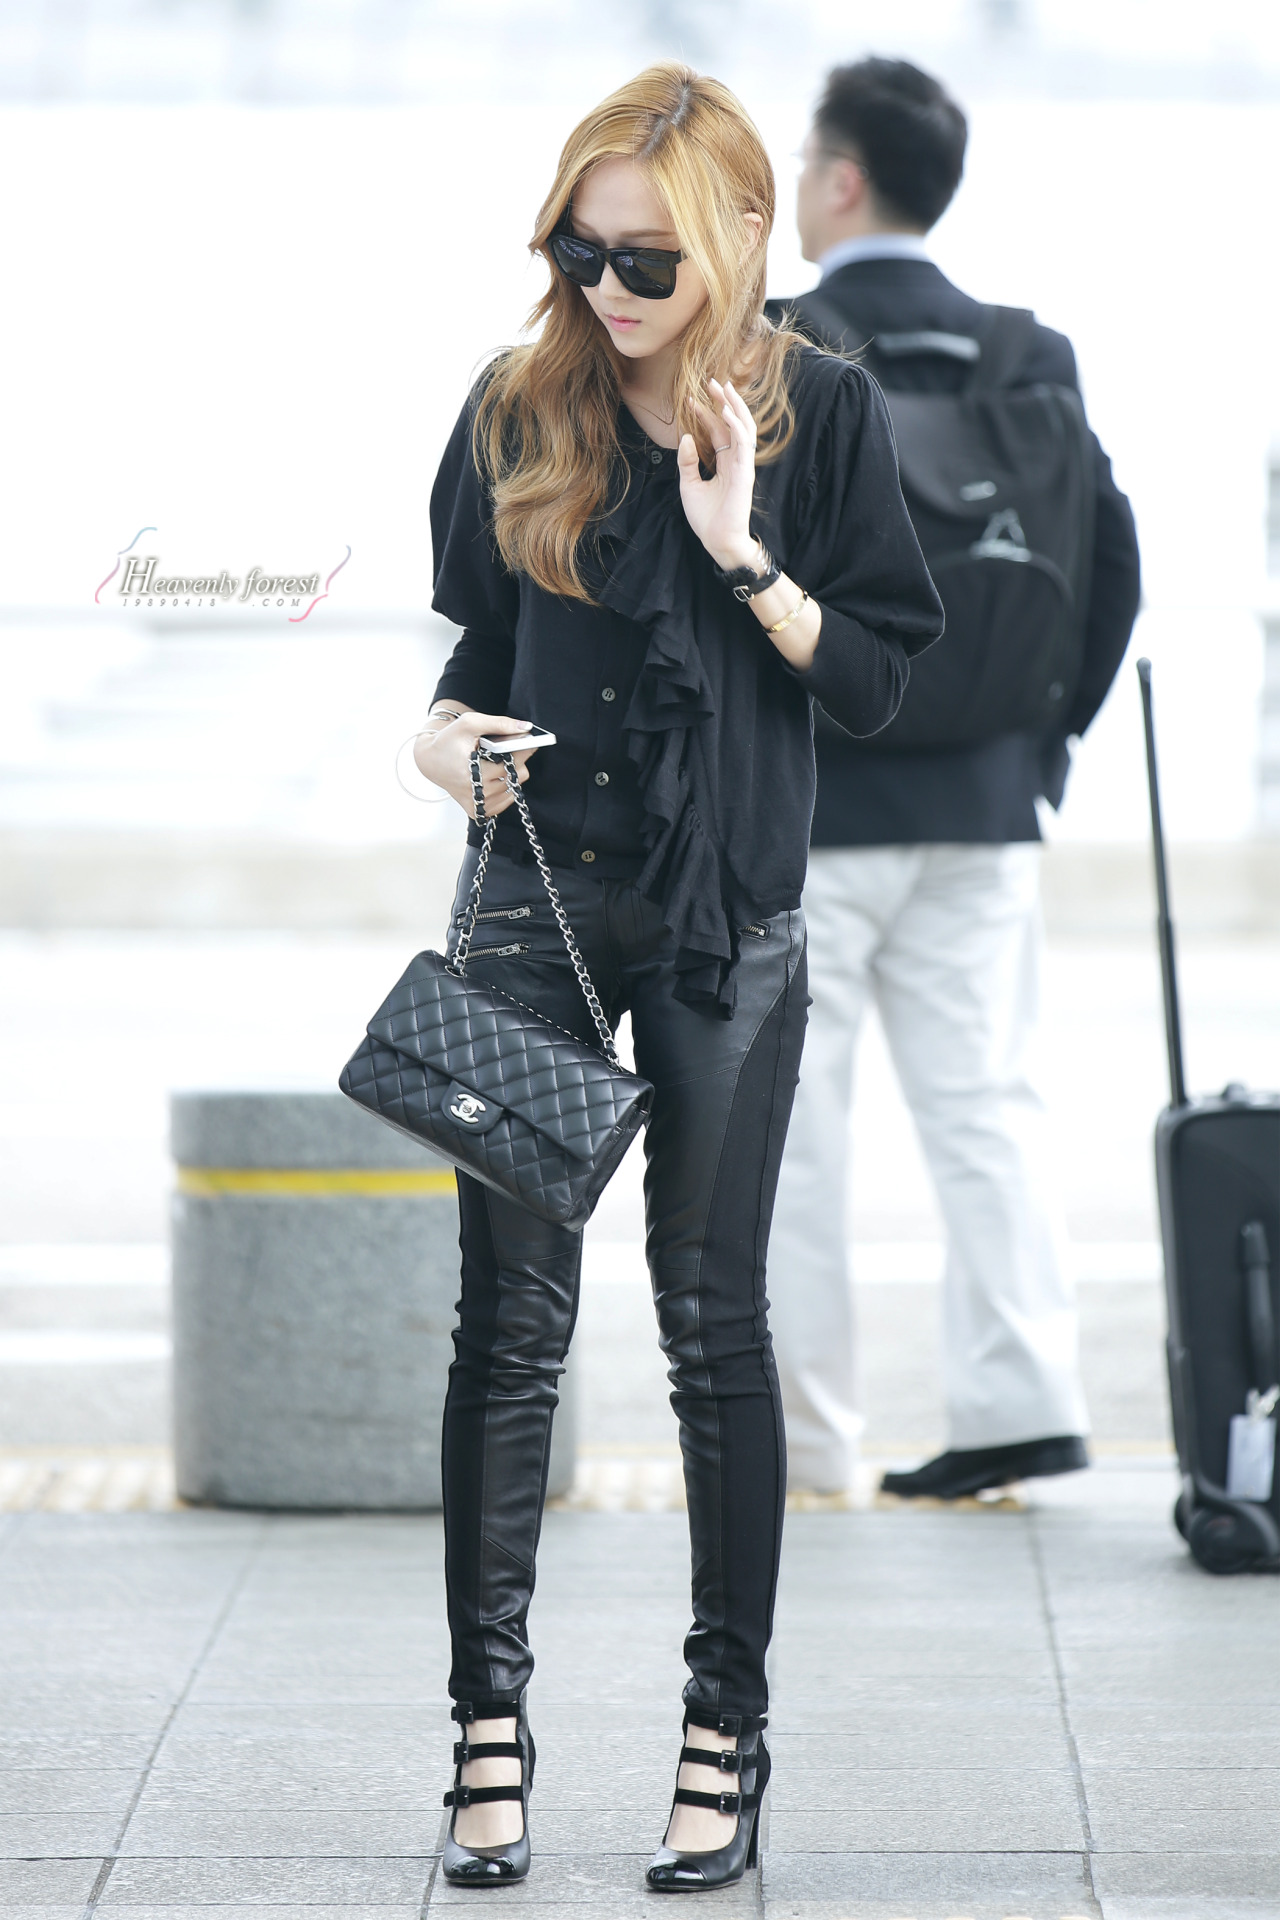 Real Airport Fashion Kpopselca Forums